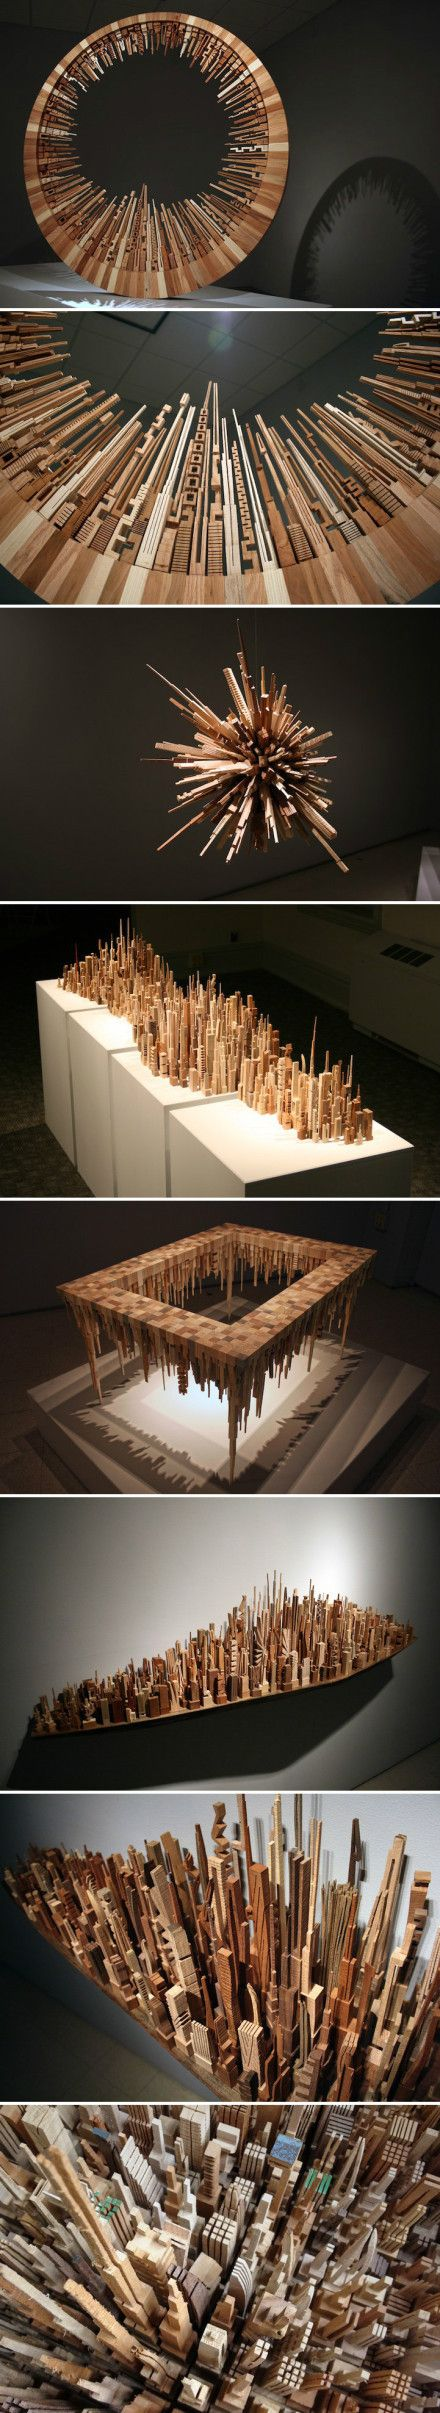 micro-city model by @McNabbDesign (made from recycled wood)